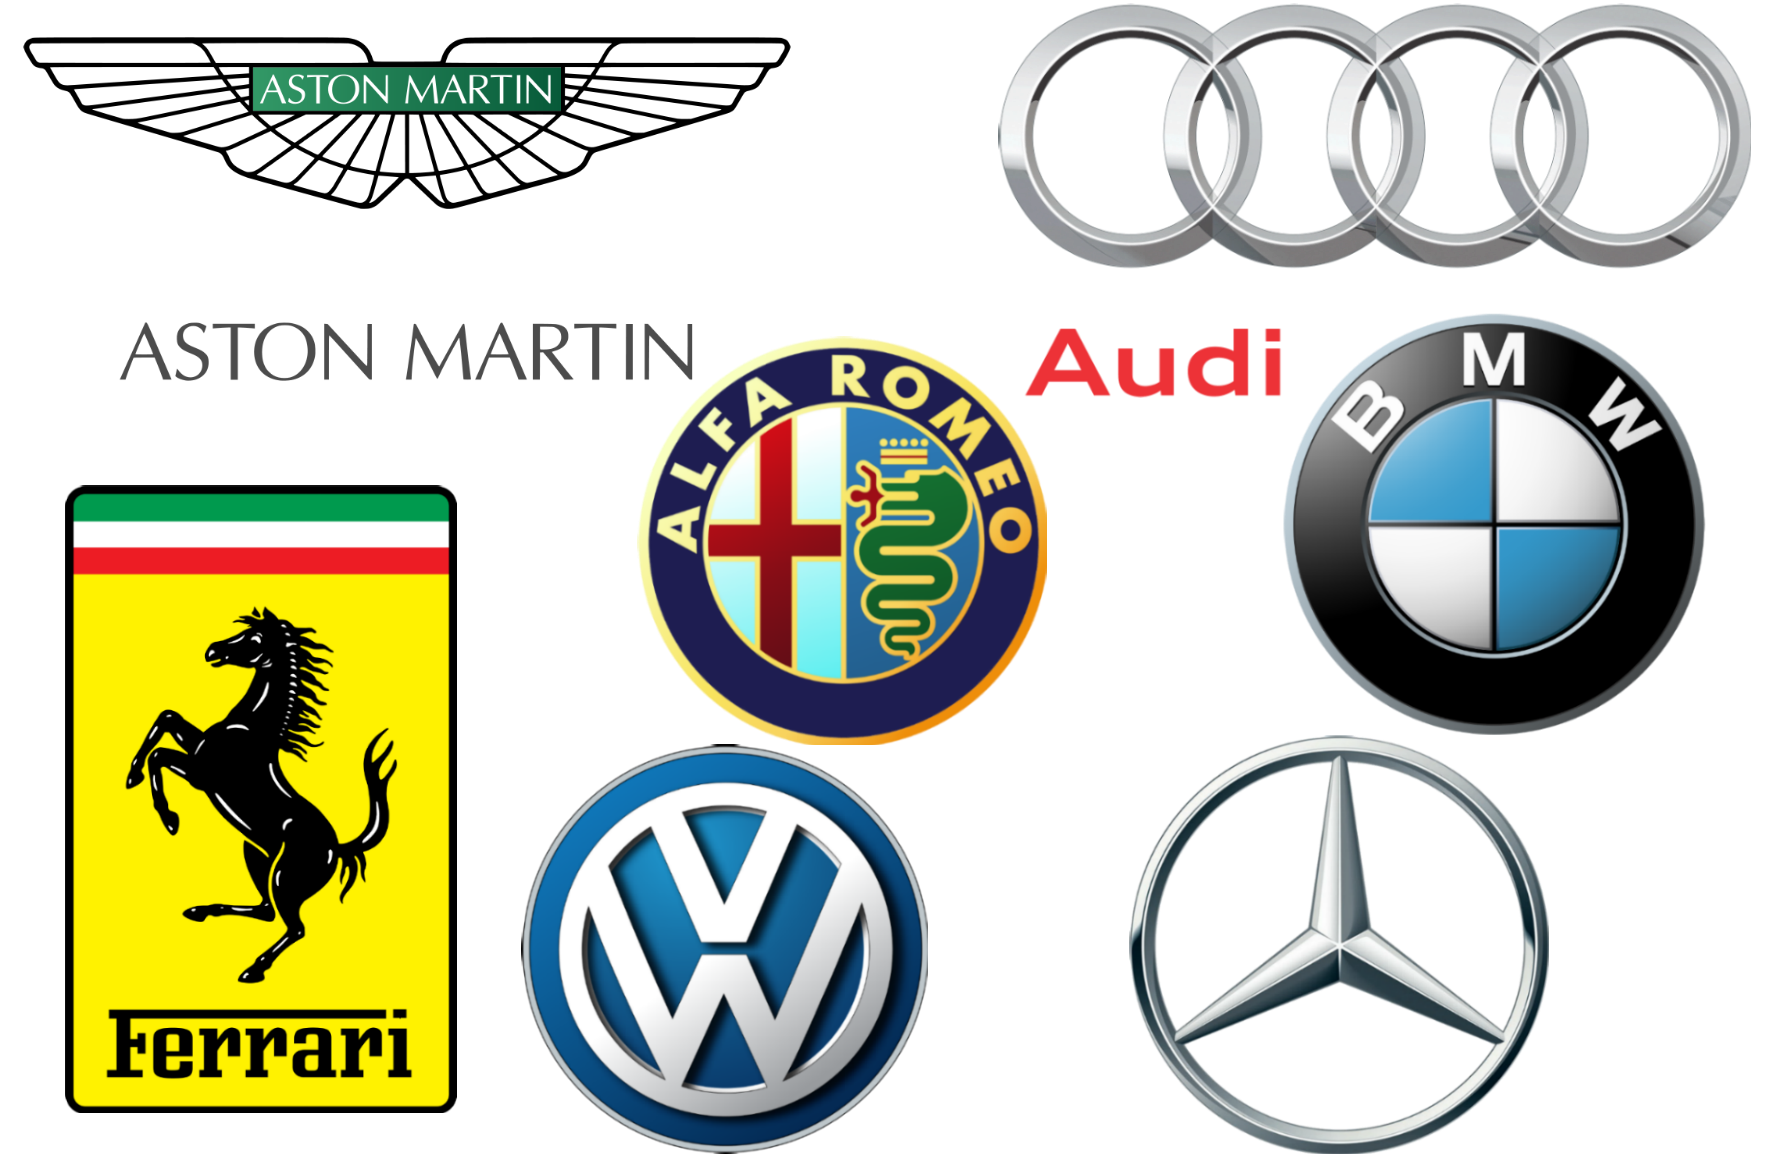 european car company logo European cars, Car brands